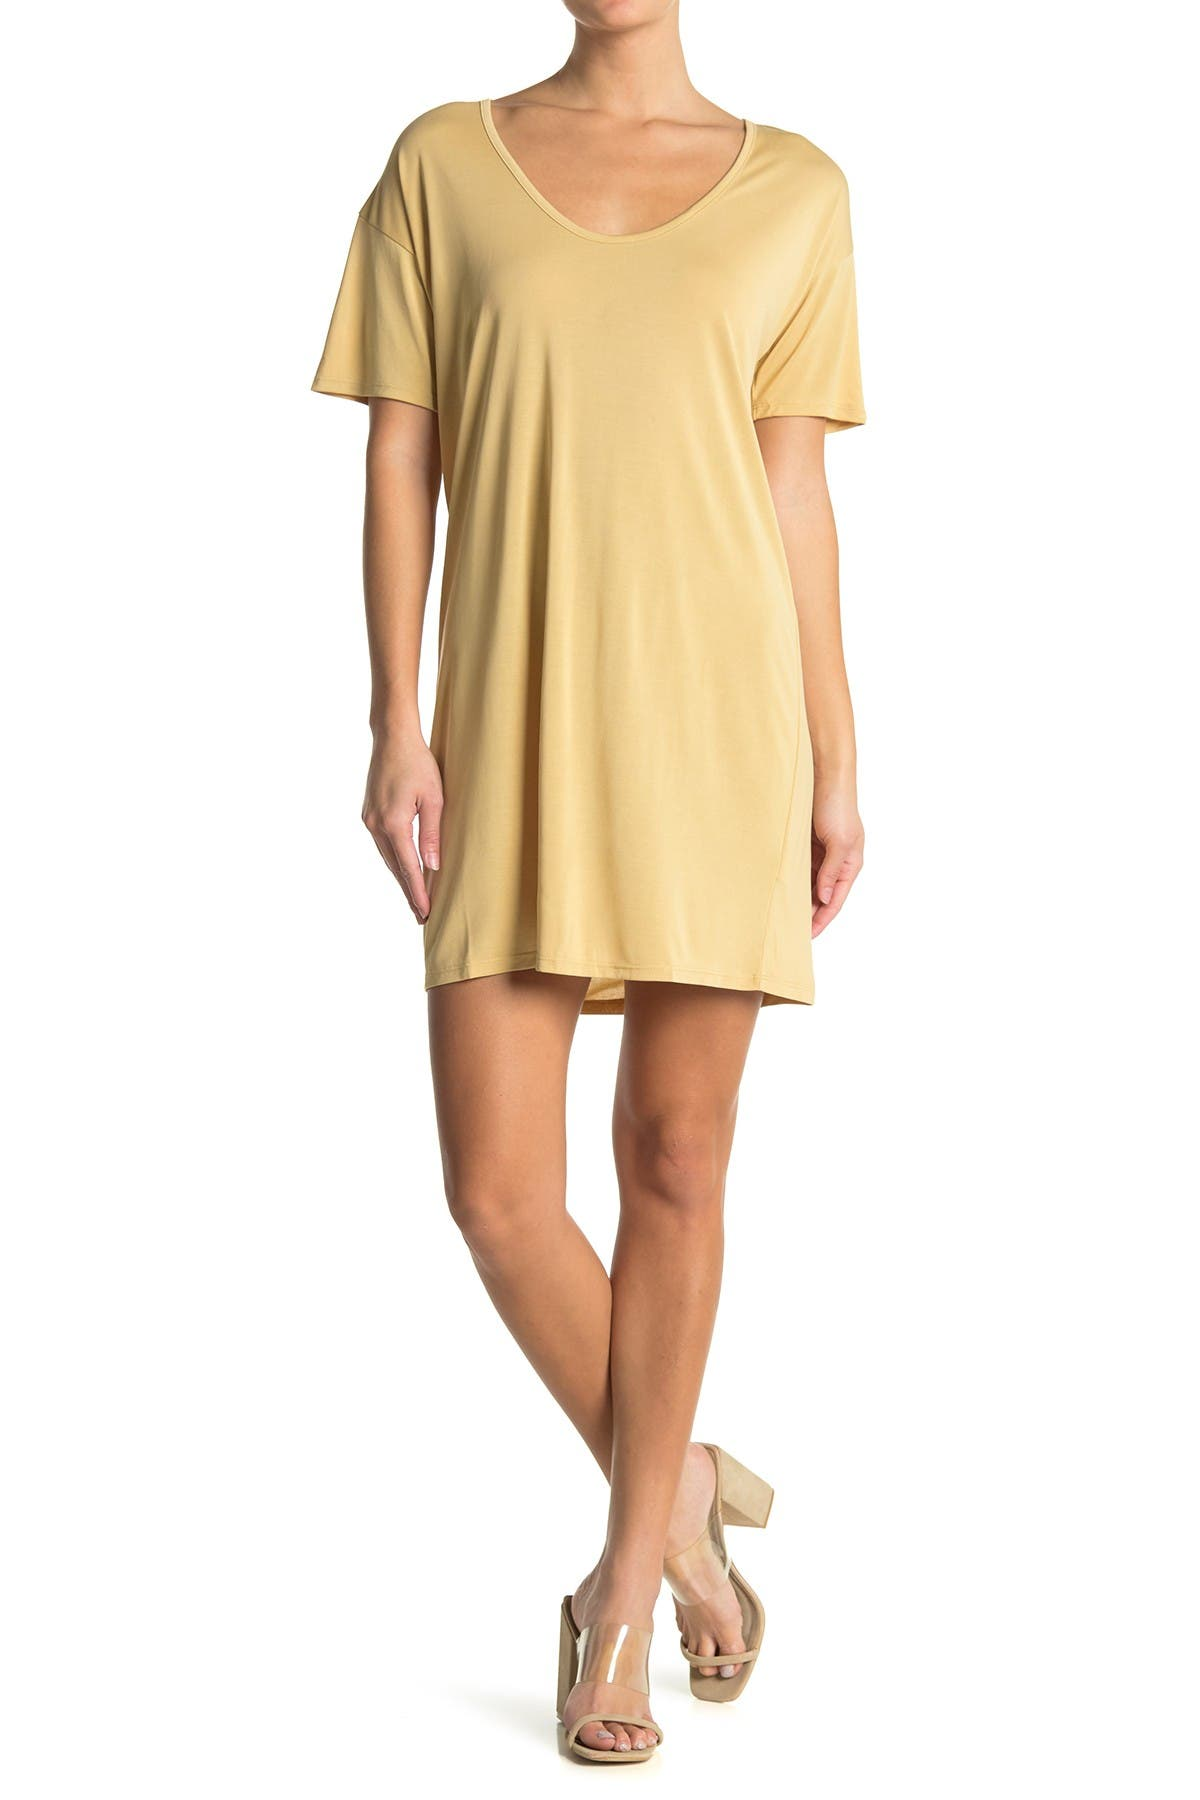 Image of Double Zero Short Sleeve Drop Shoulder T-Shirt Dress